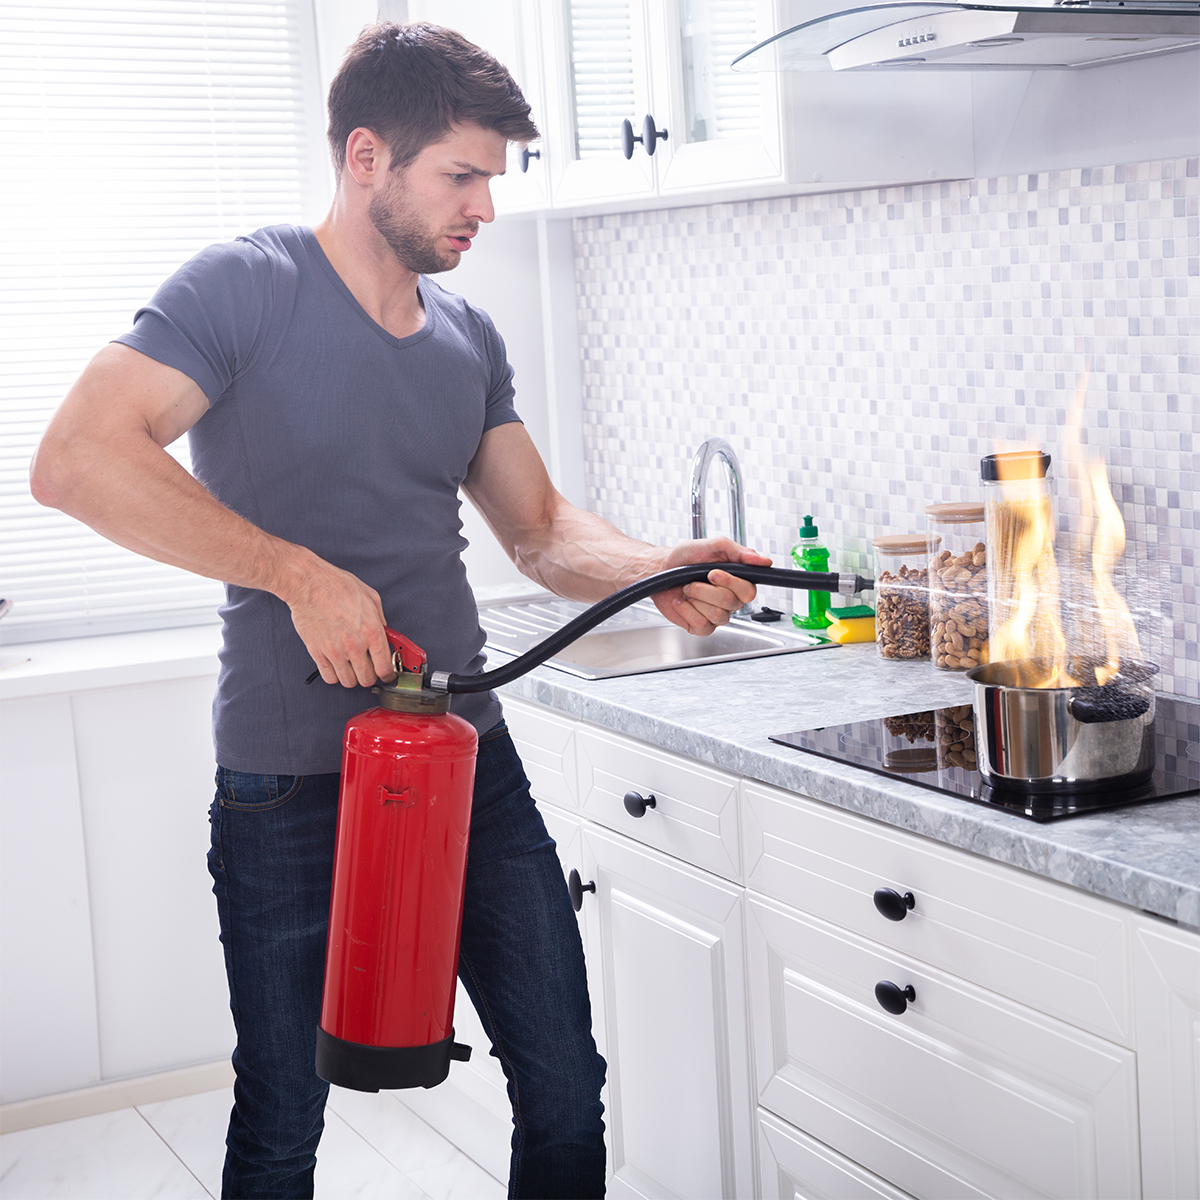 OUCH! in the Kitchen - Safety when Cooking with Fire